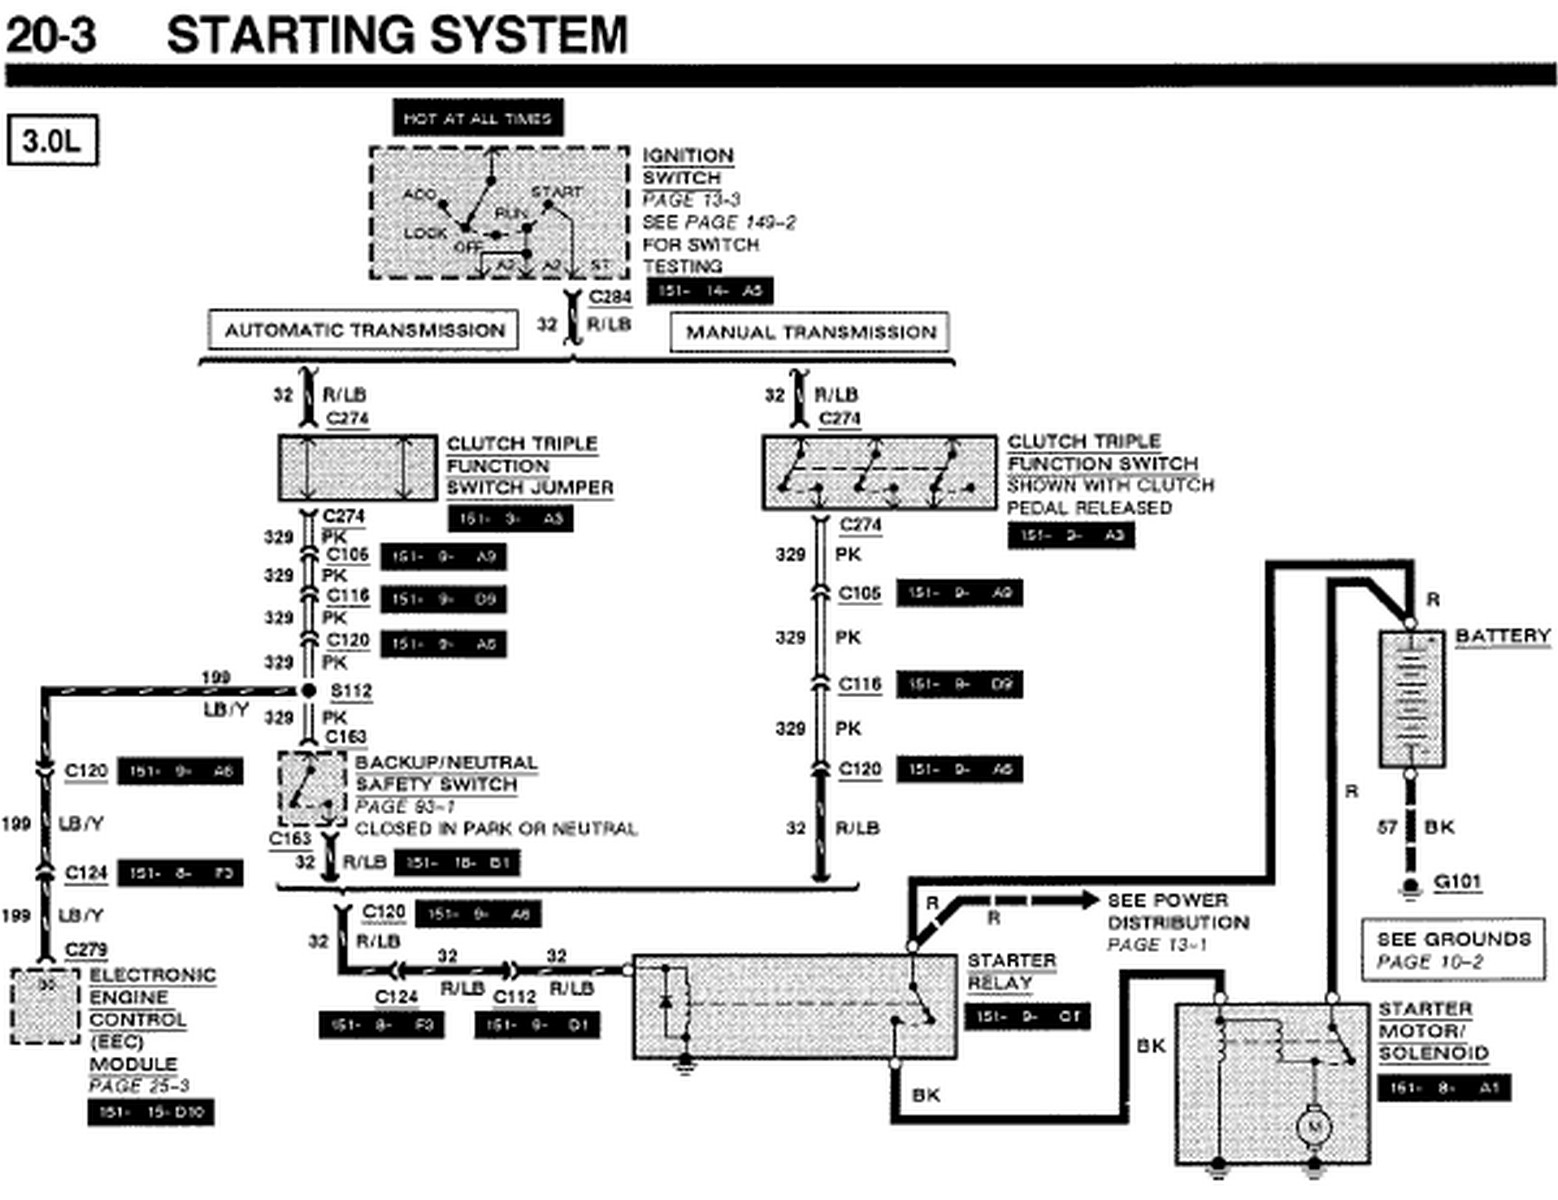 Wiring Diagram For Neutral Safety Switch